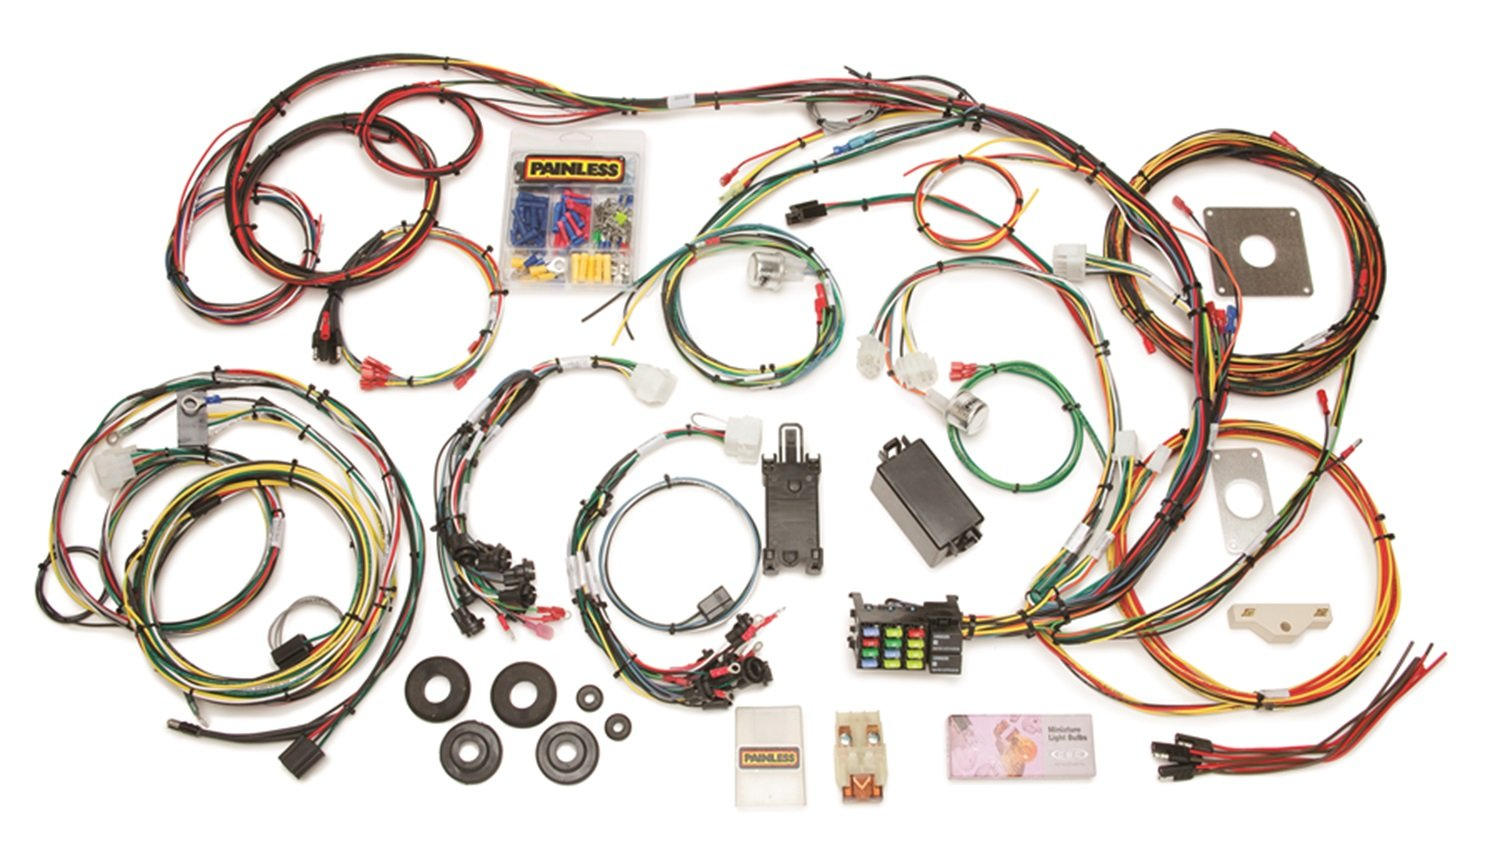 Painless 20120 Automotive Wiring And Chassis Harness